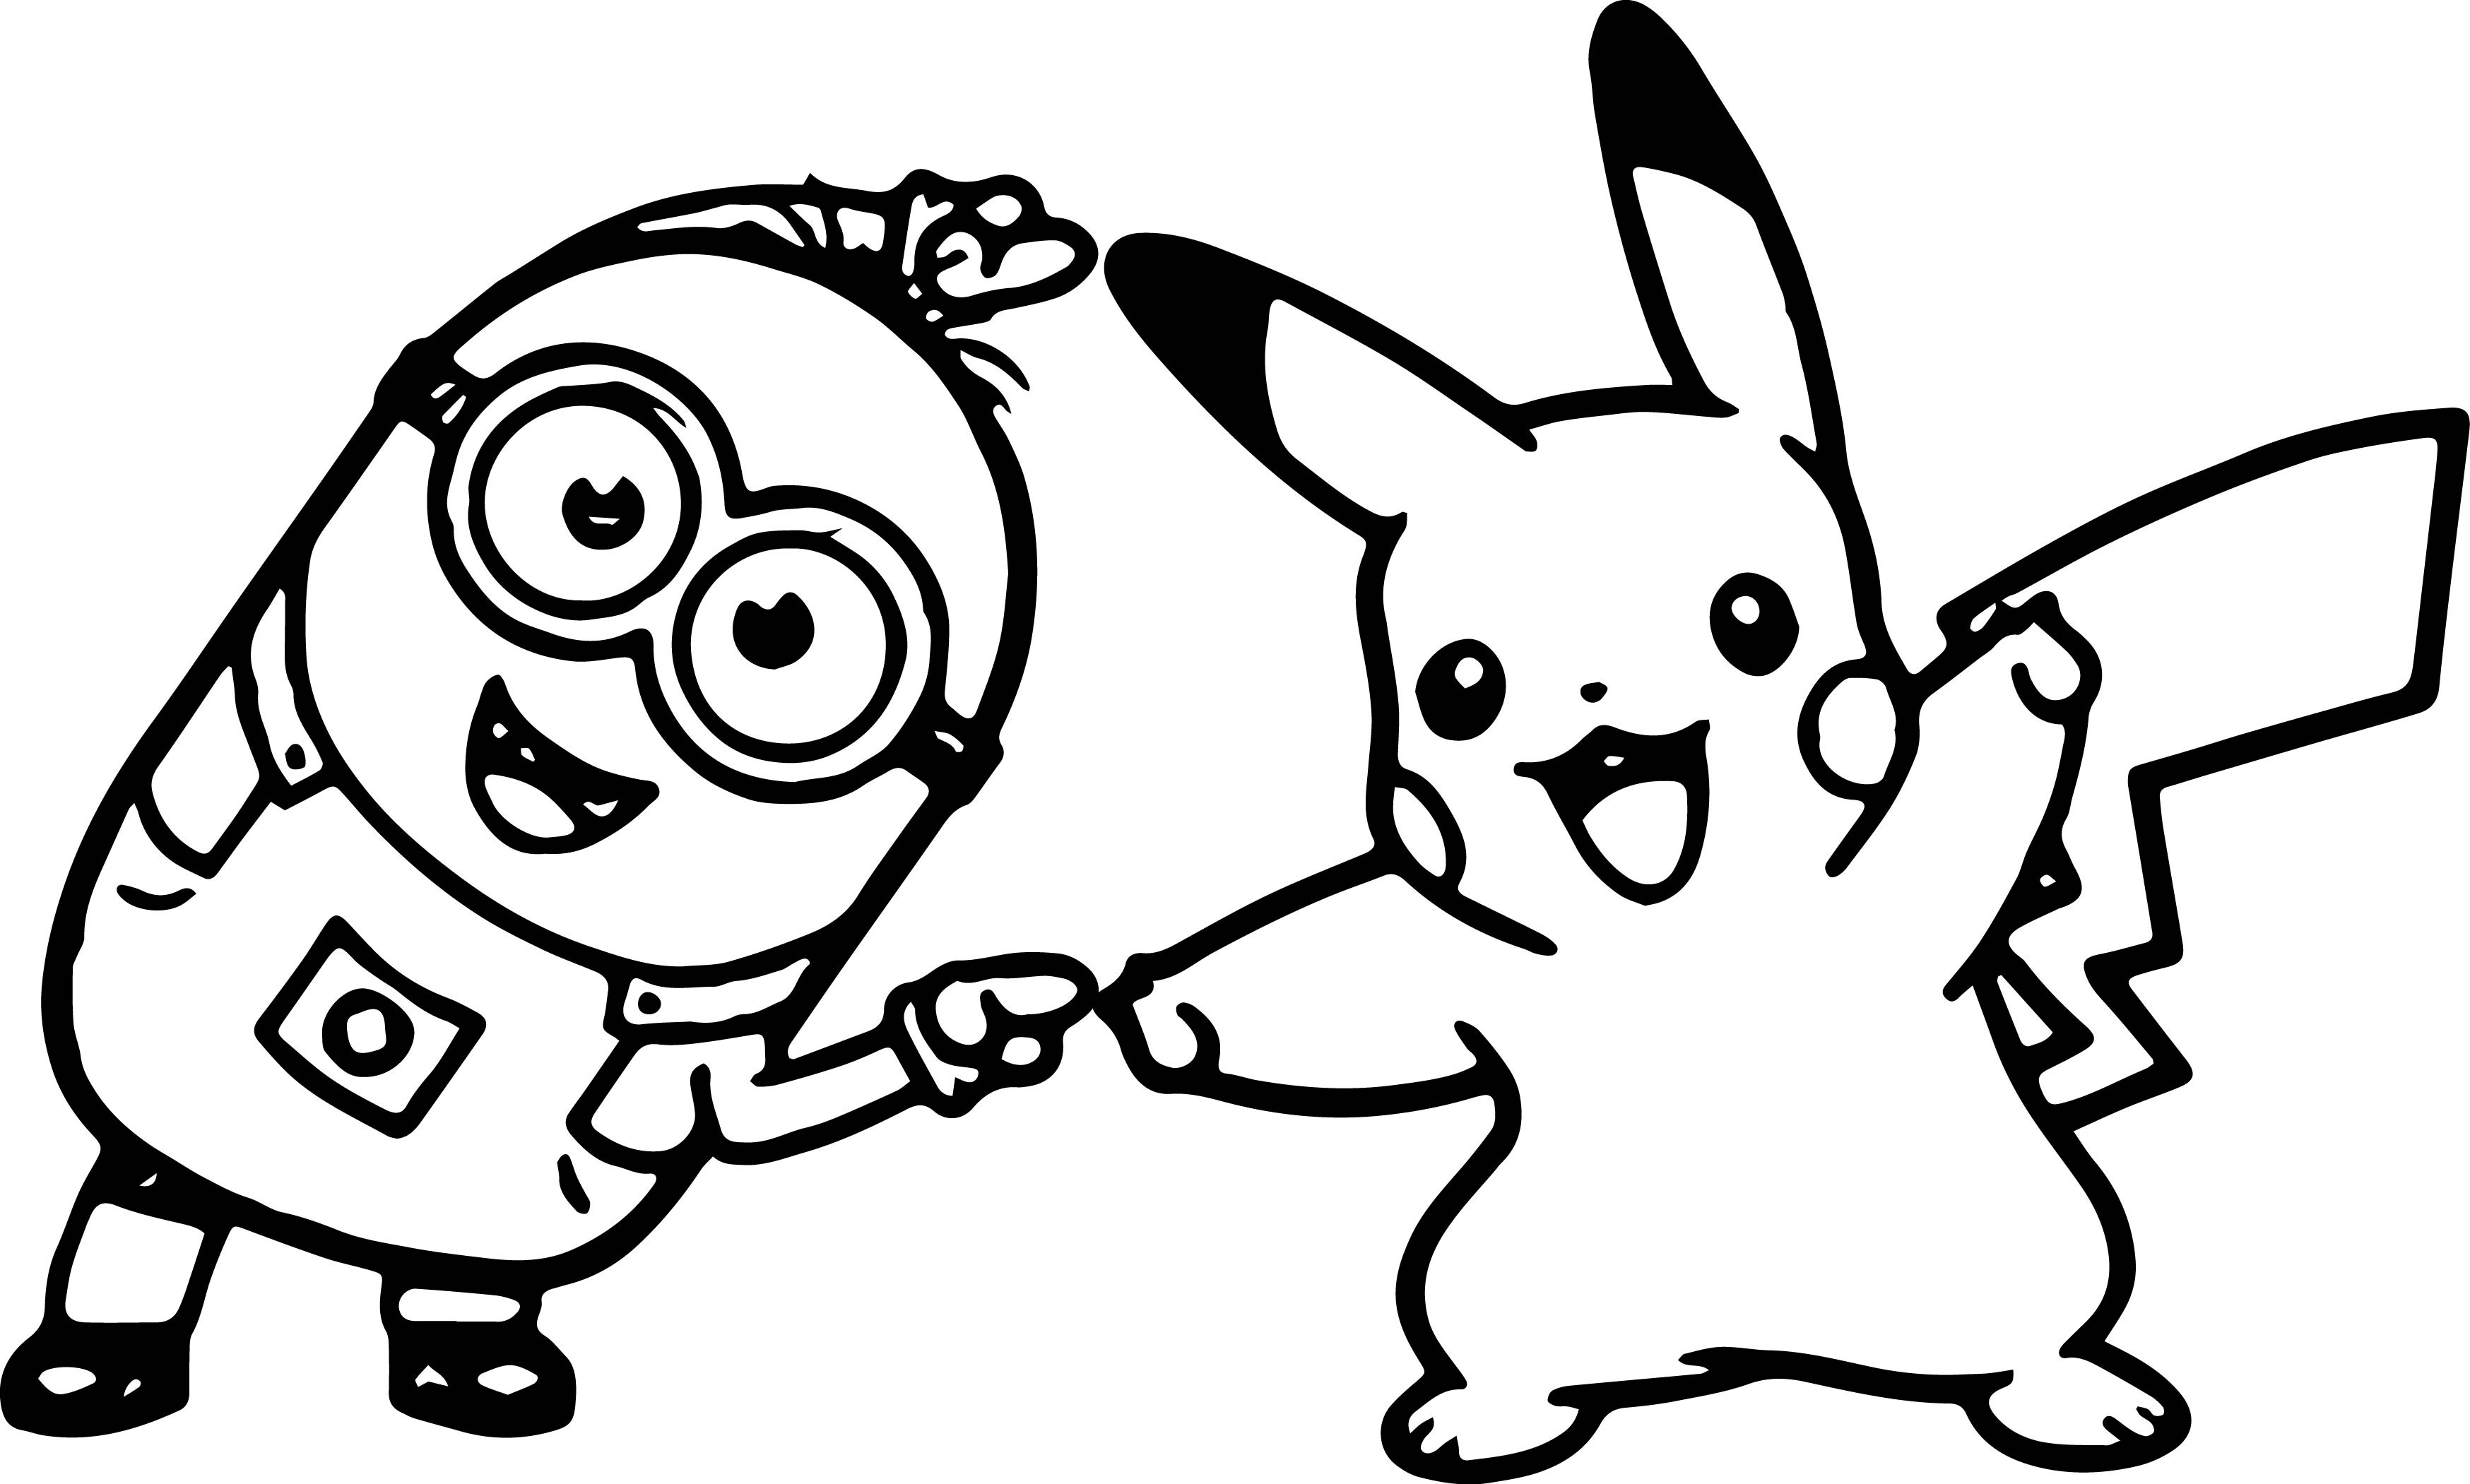 Minion Kevin Golf Dancing With Pikachu Coloring Page - Free ...